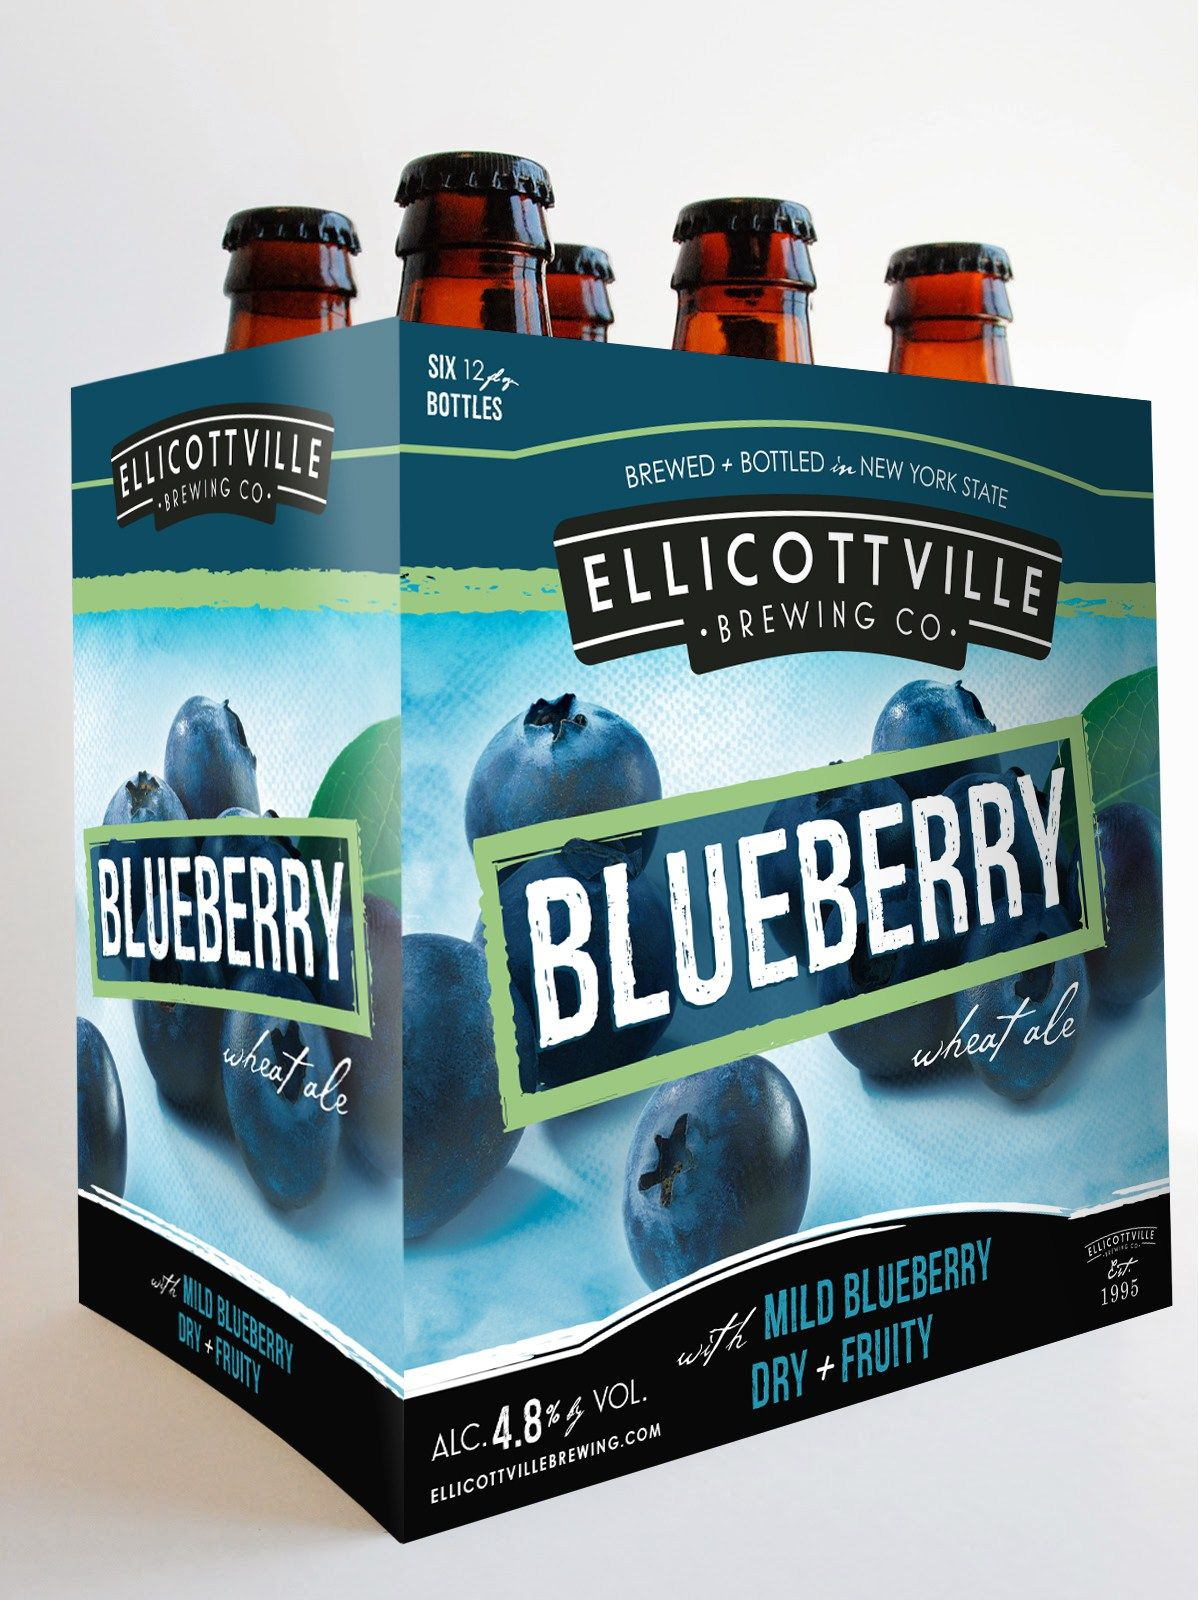 EBC Blueberry Wheat | Beverages | Pinterest | Beverage, Blueberry ...